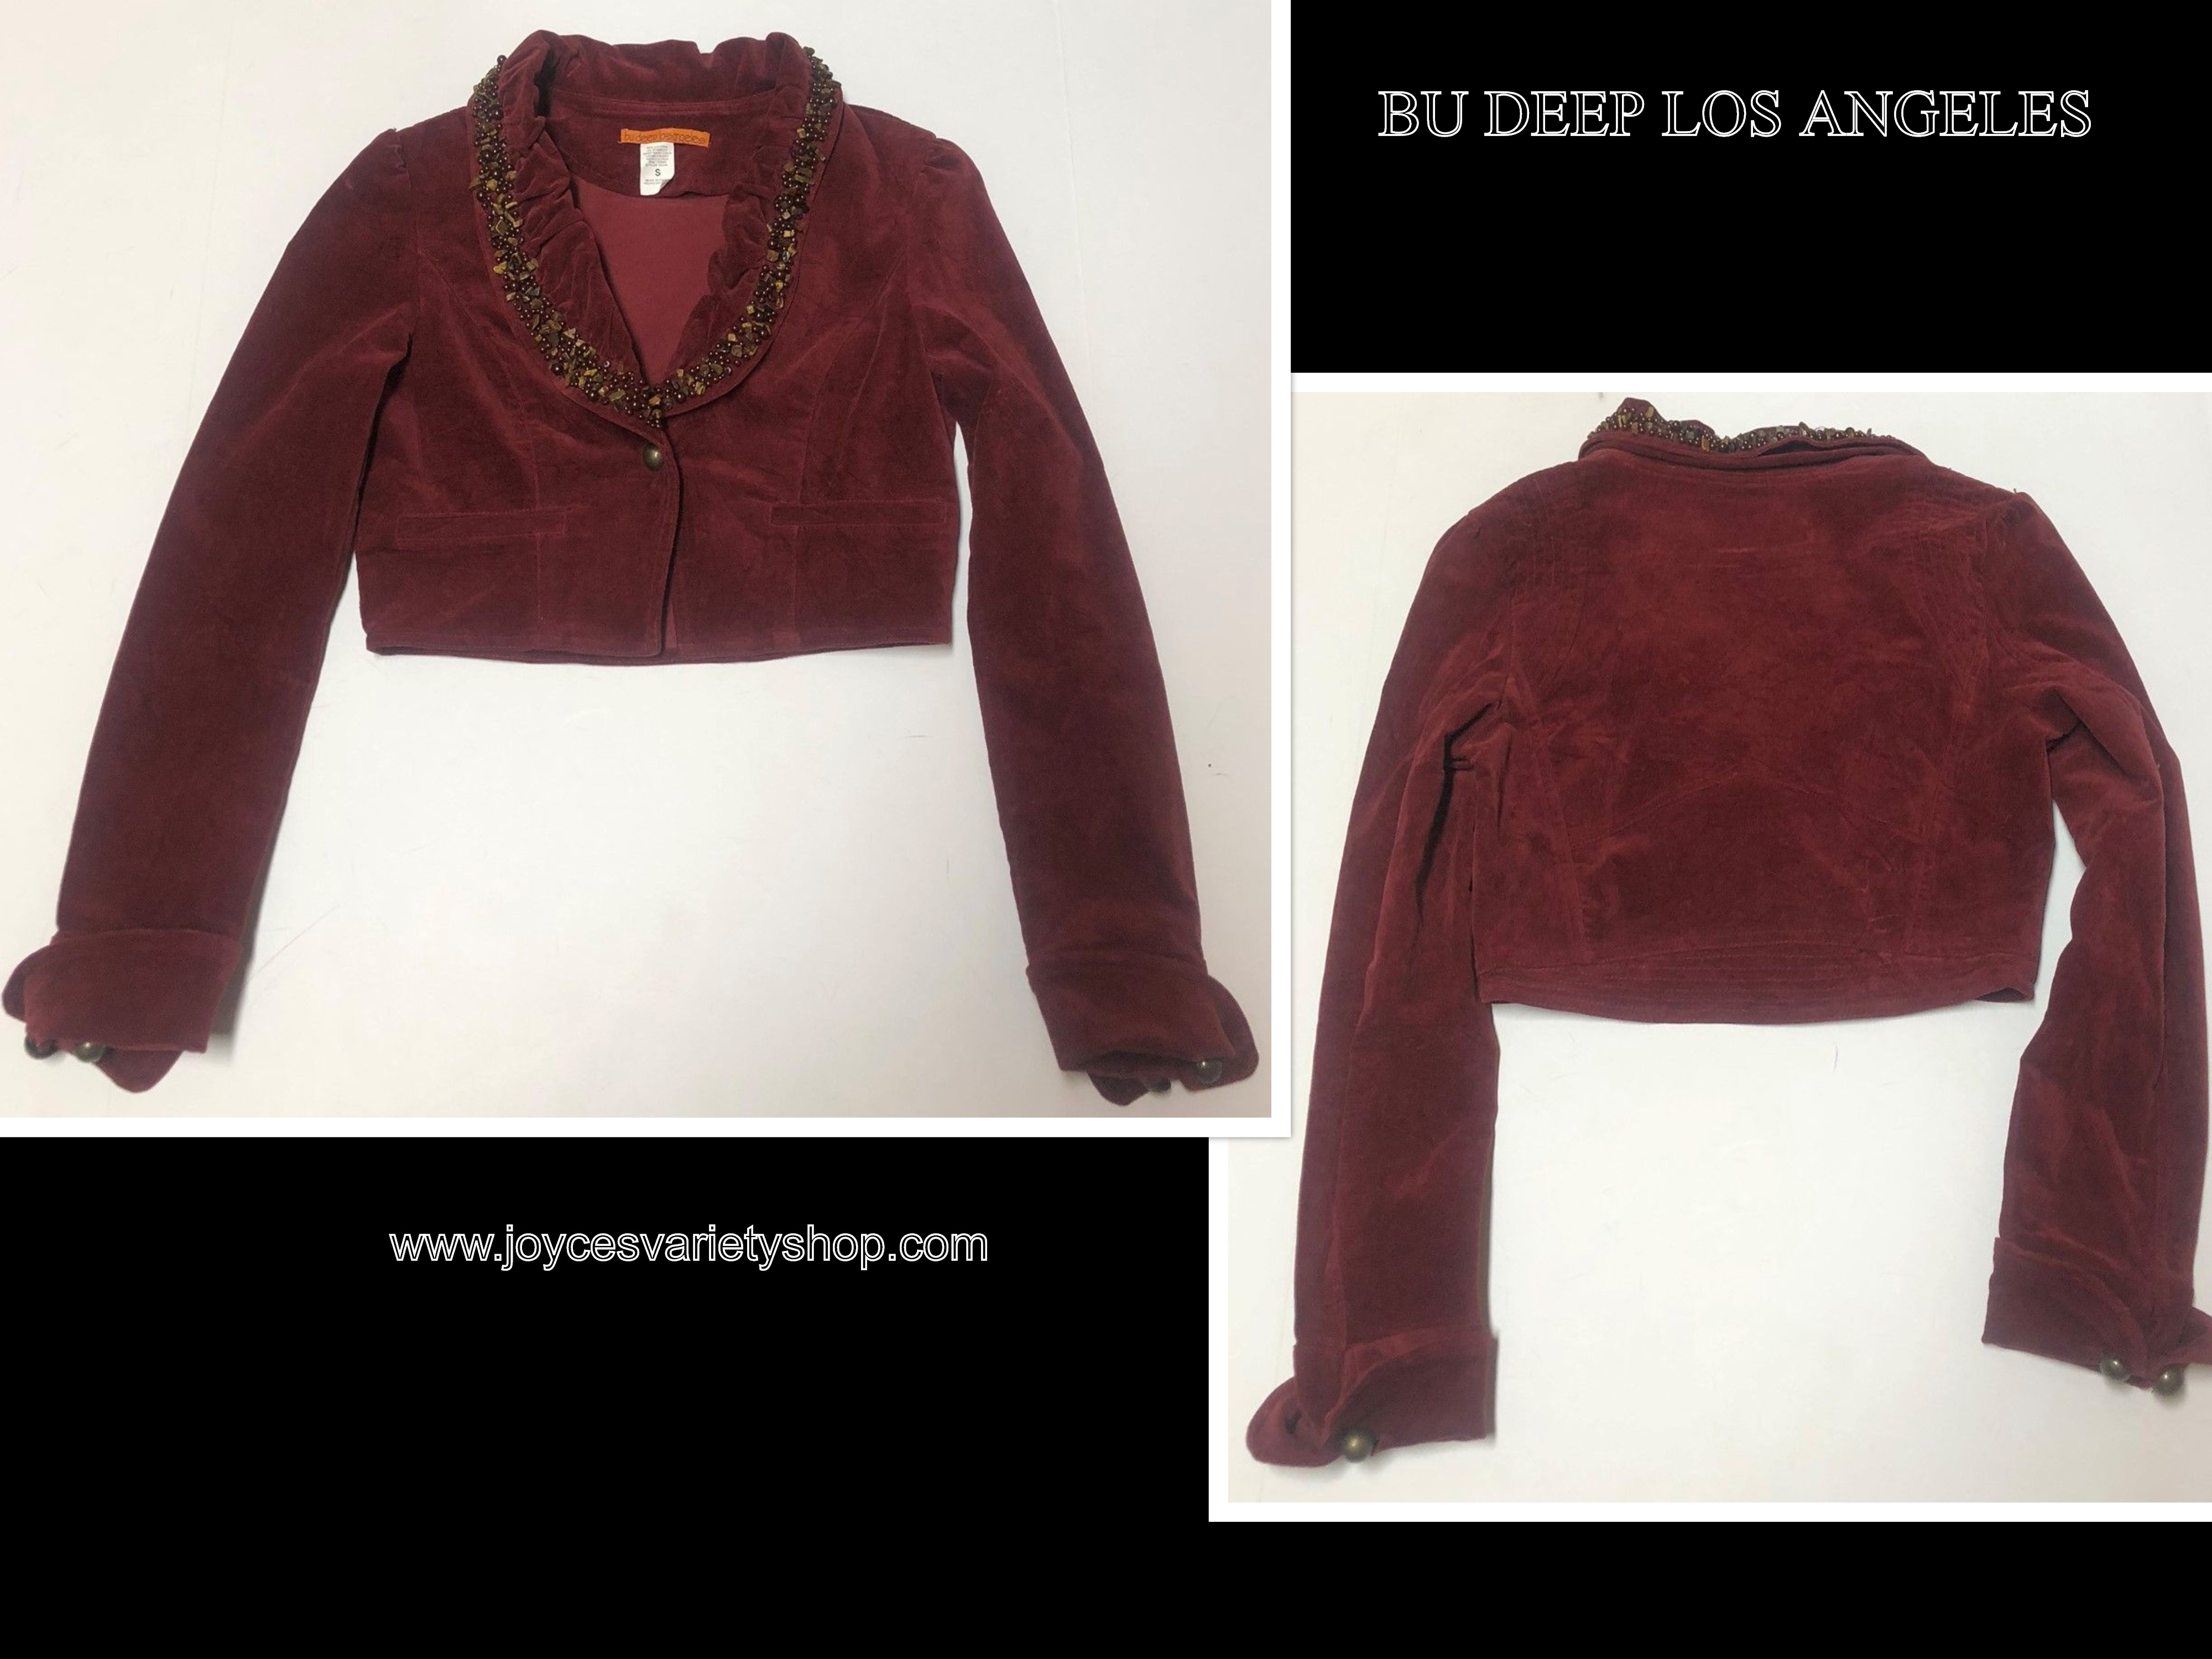 Bu Deep Los Angeles Faux Suede Crop Jacket Beaded Collar Maroon Red Sz Small